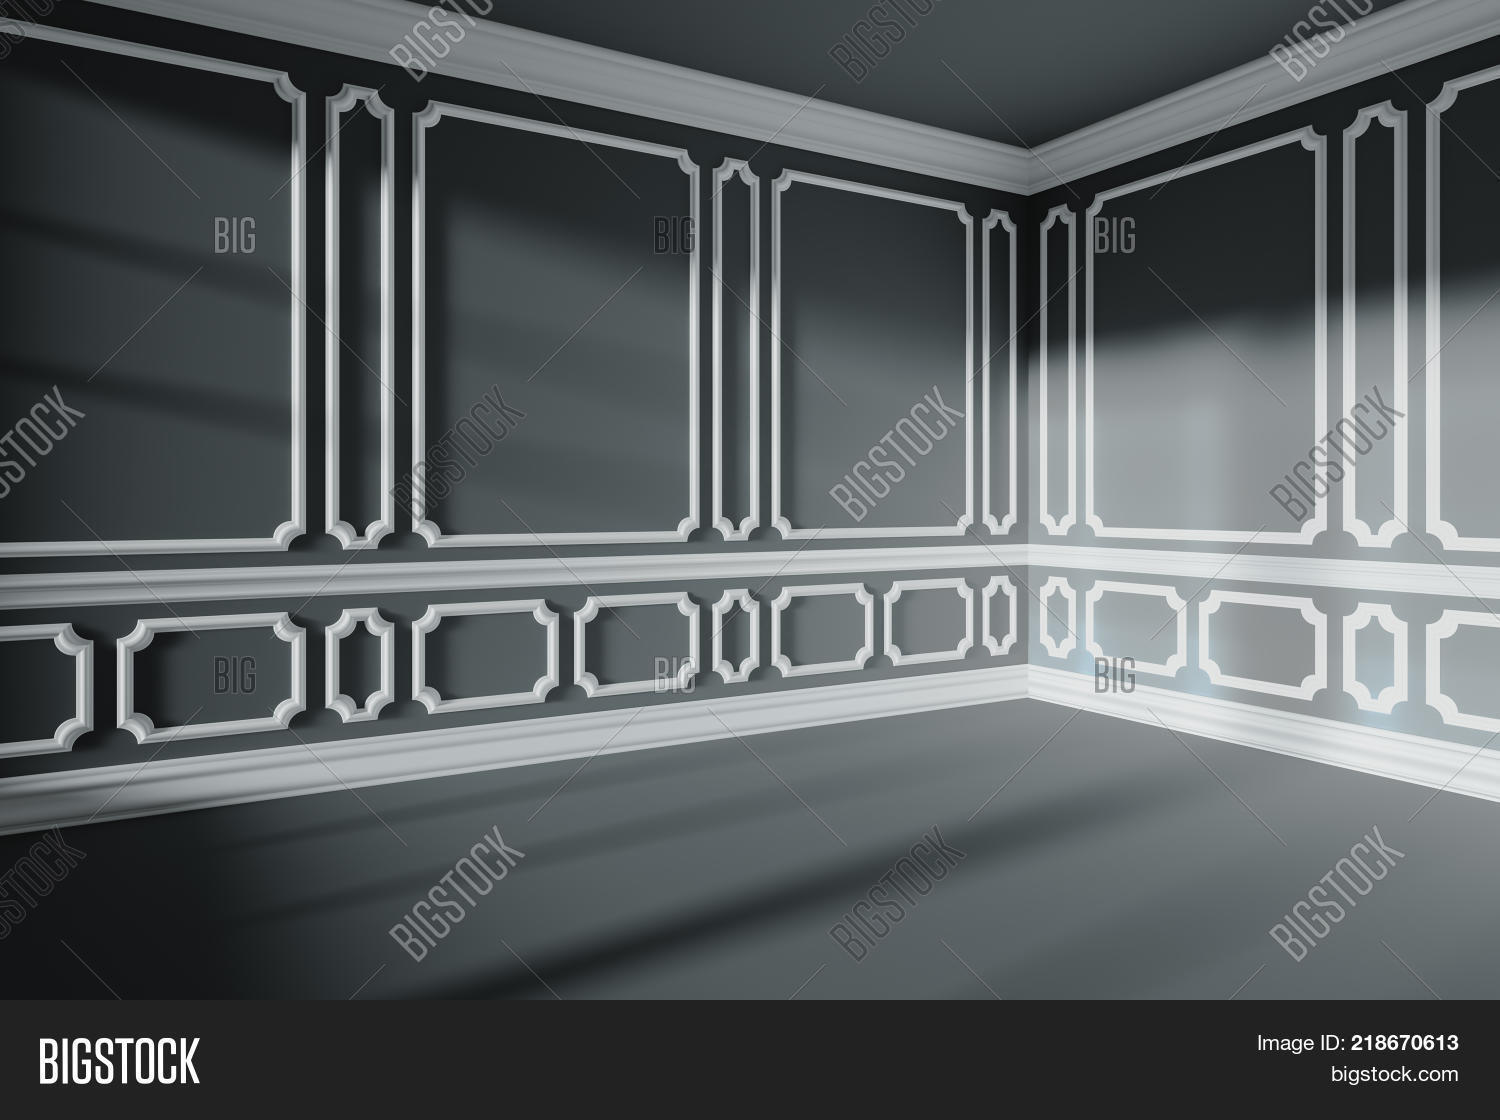 5a992c51f87a Black empty room wall with sunlight from window with white decorative  classic style molding frames on